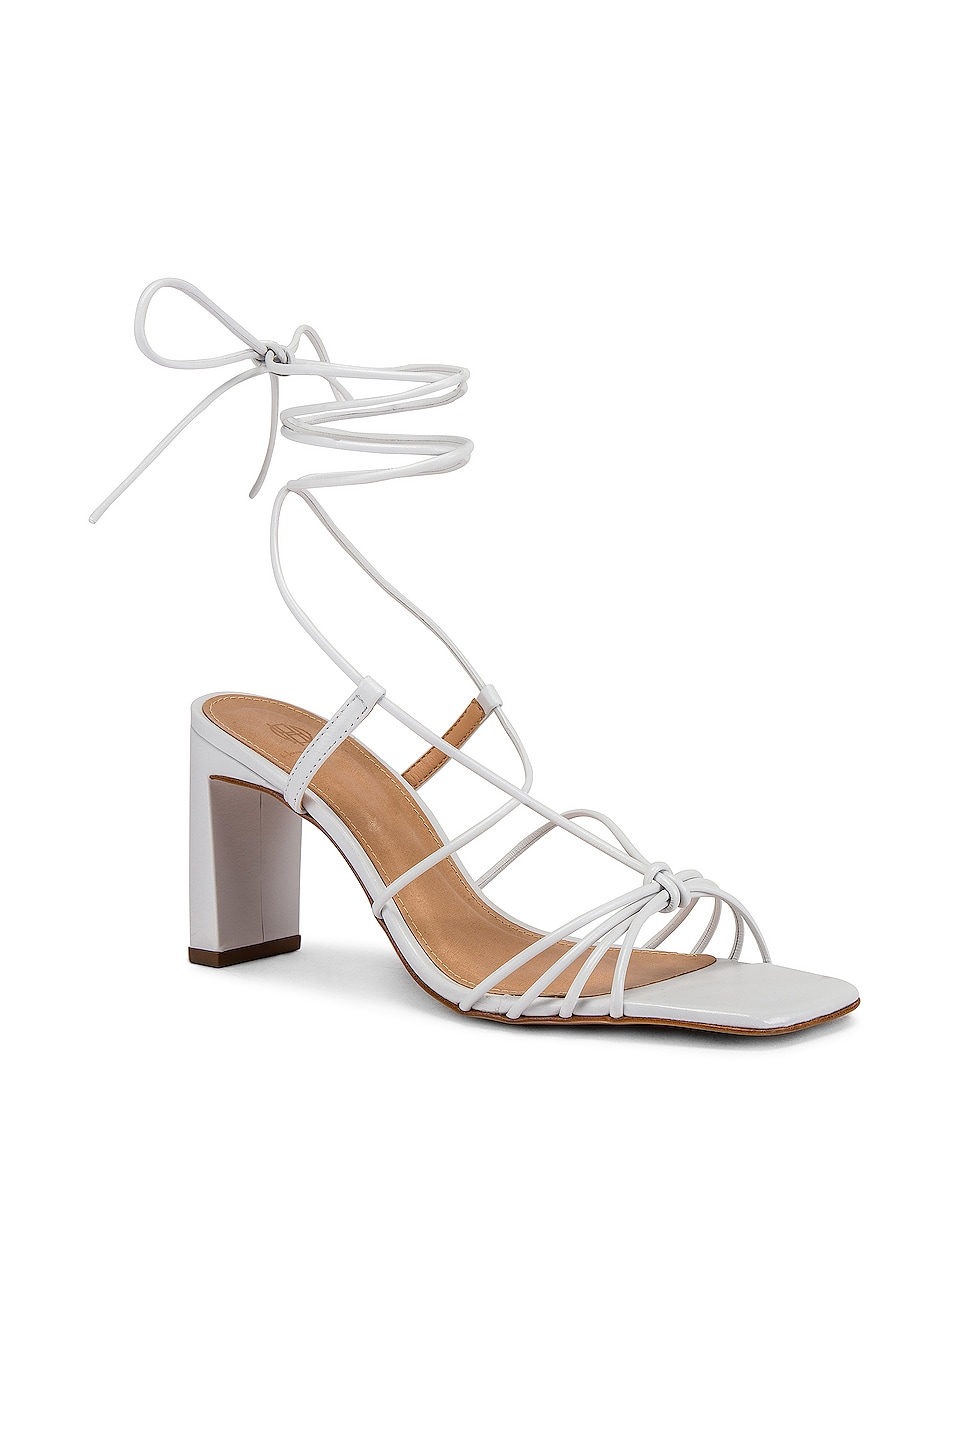 House of Harlow 1960 x REVOLVE Suzy Heel in White